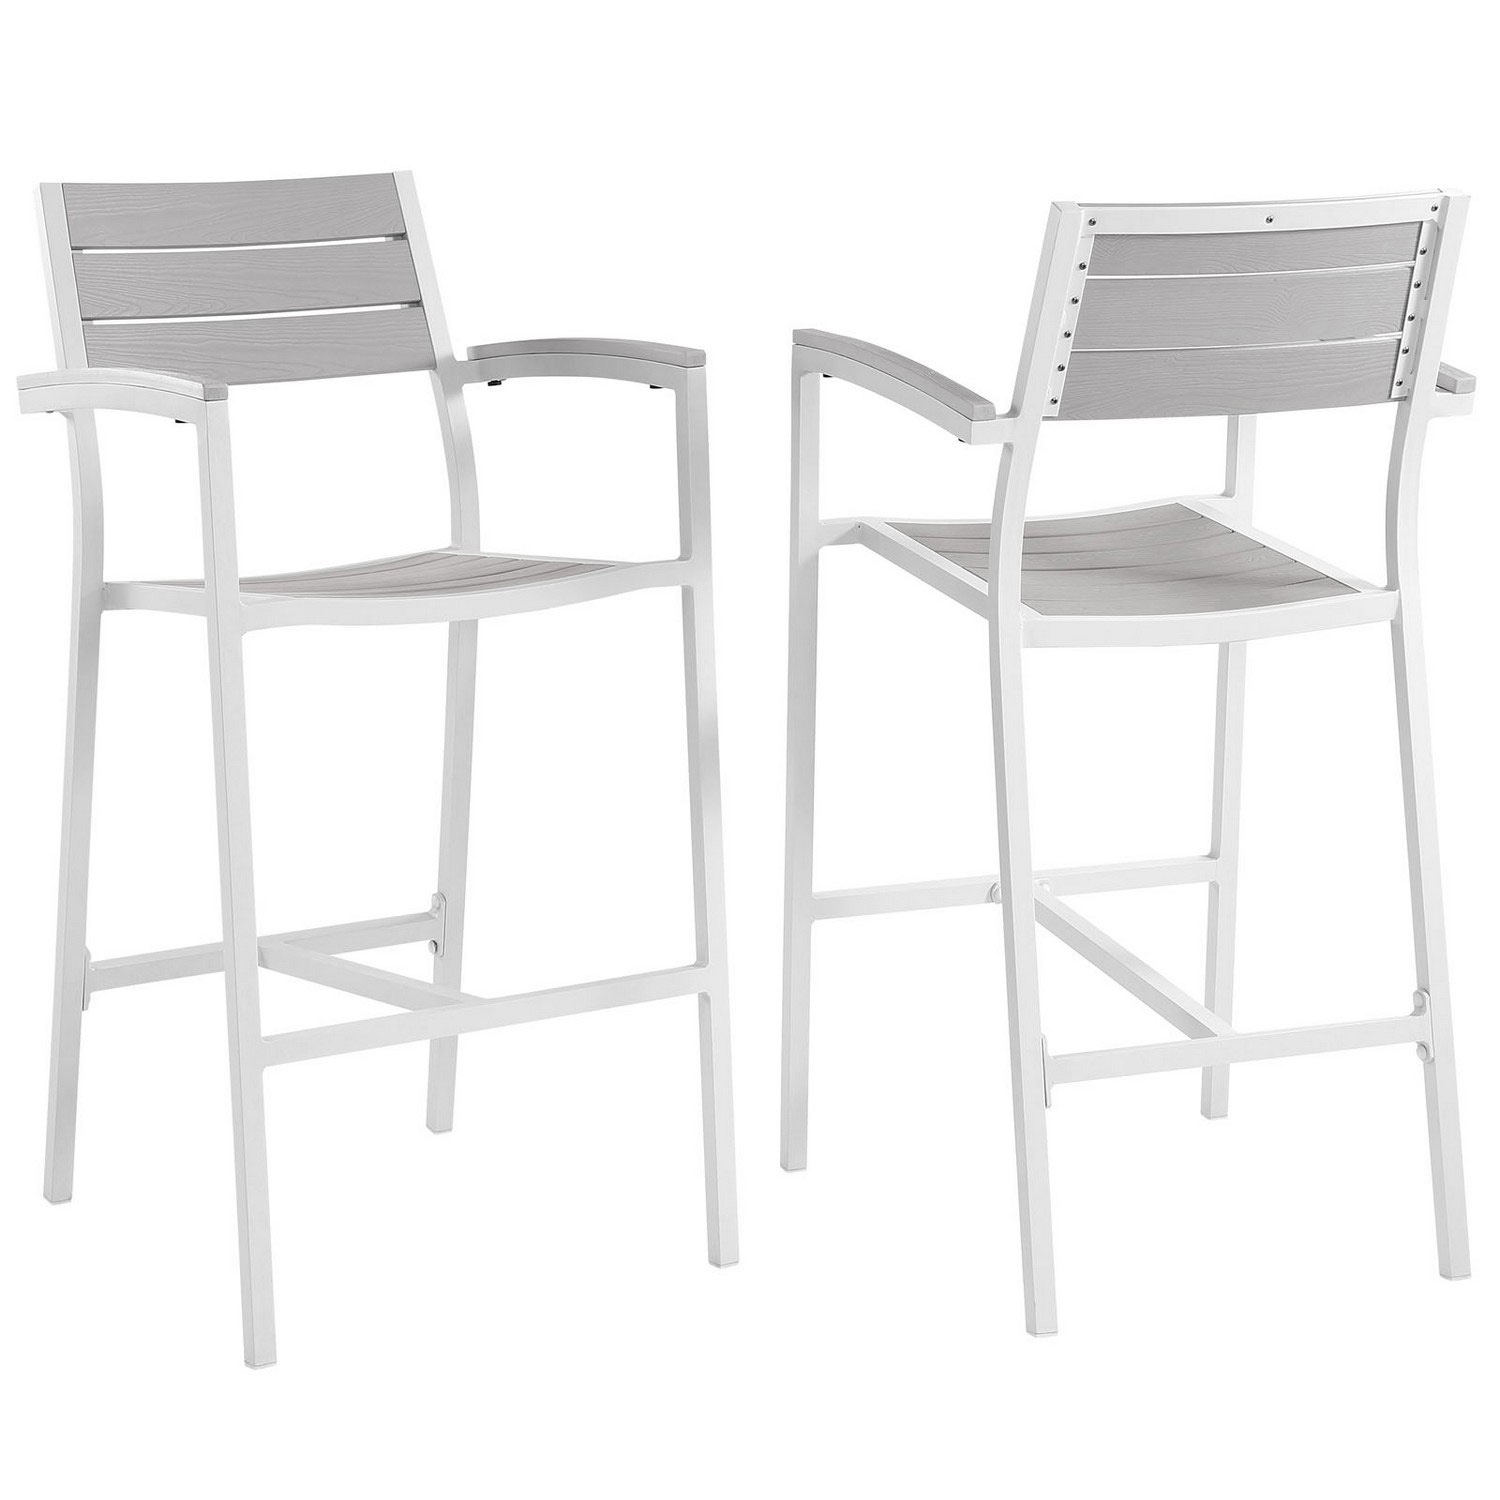 Modway Maine Bar Stool Outdoor Patio Set of 2 - White/Light Gray